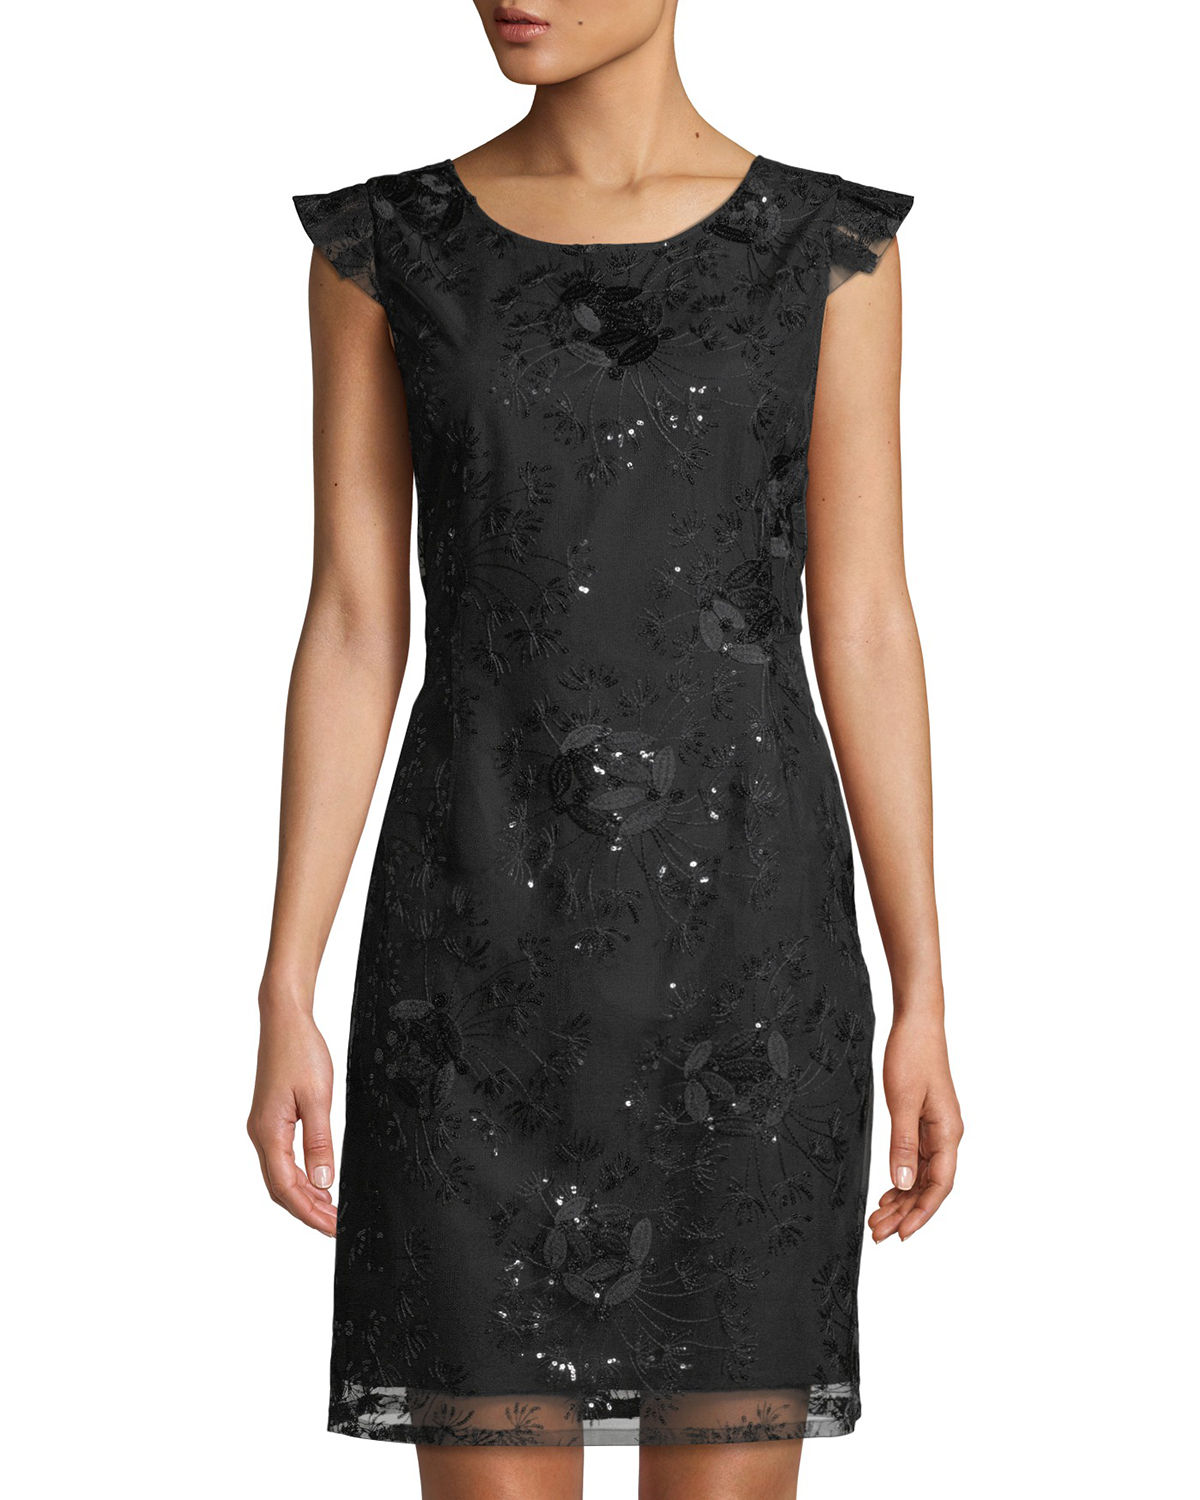 Nanette Lepore FLORAL EMBROIDERED V-BACK SHEATH DRESS